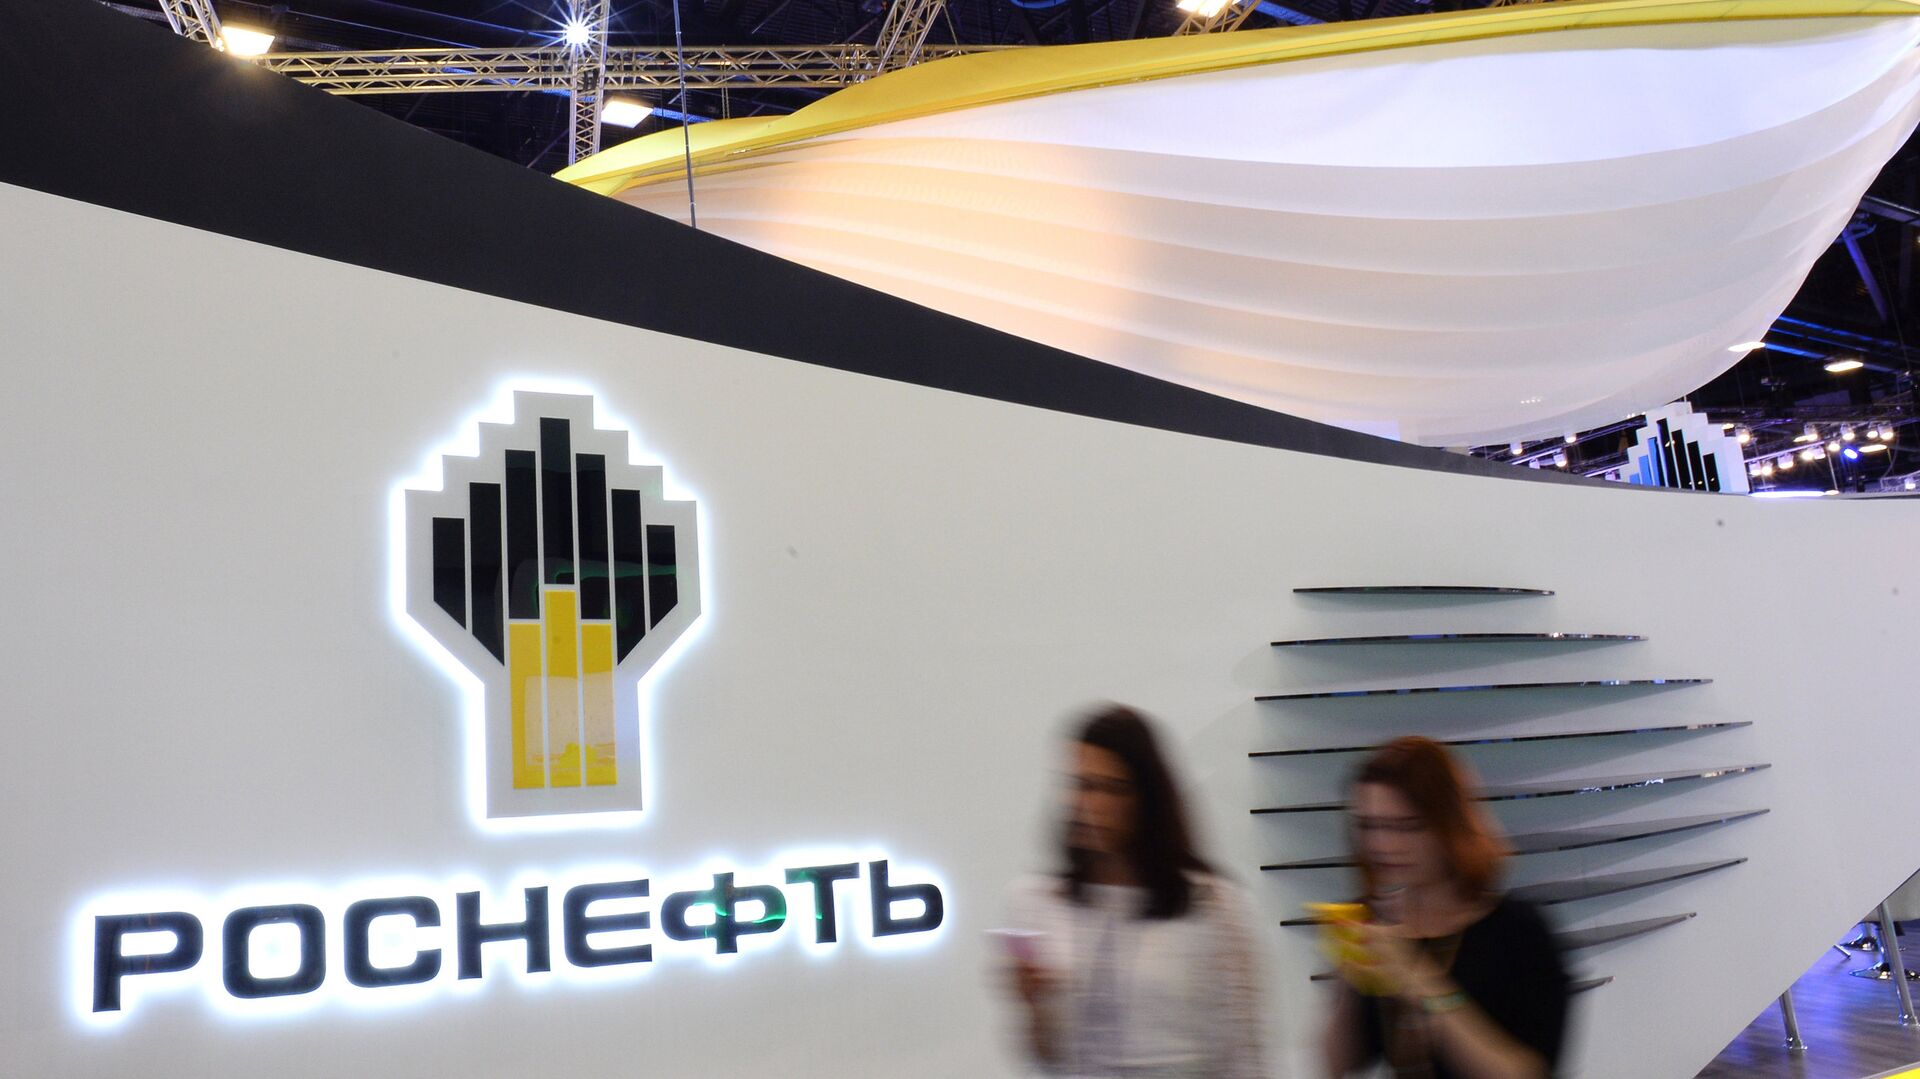 Rosneft stand in the Expoforum exhibition center before the opening of the 20th St. Petersburg International Economic Forum - Sputnik Italia, 1920, 02.09.2021